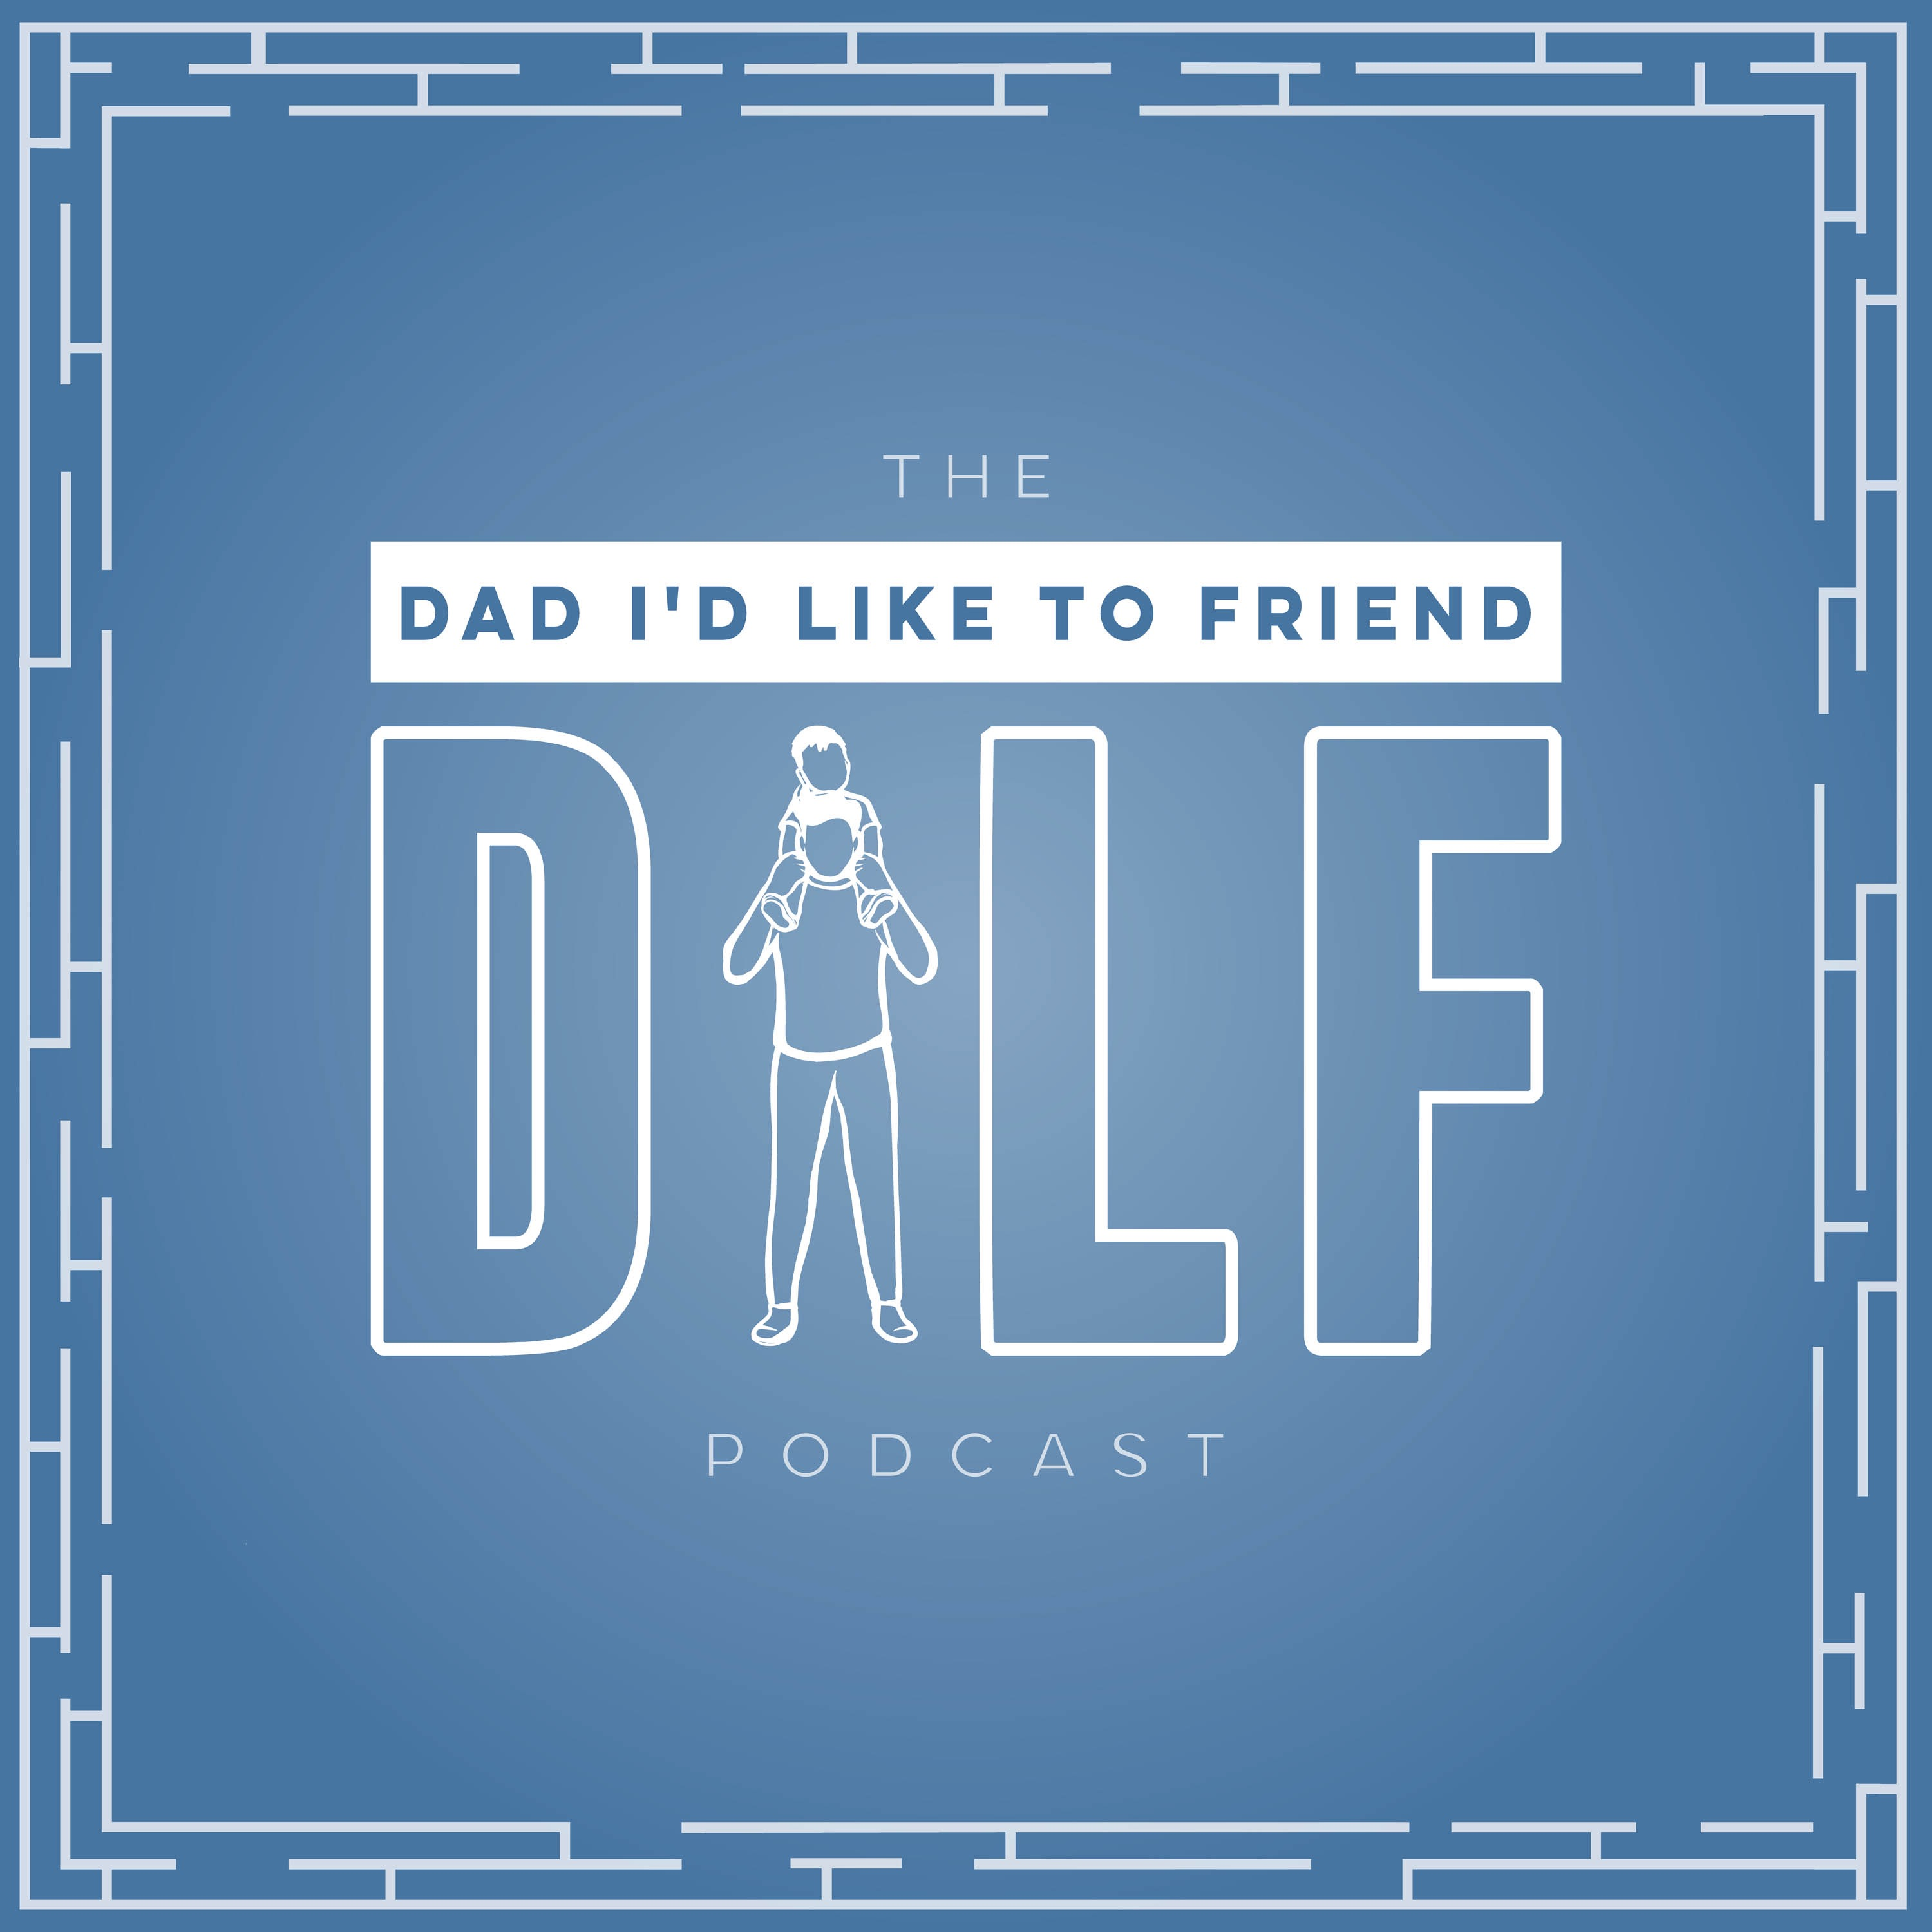 top parenting podcast, Dad I'd Like To Friend (The DILF Podcast)